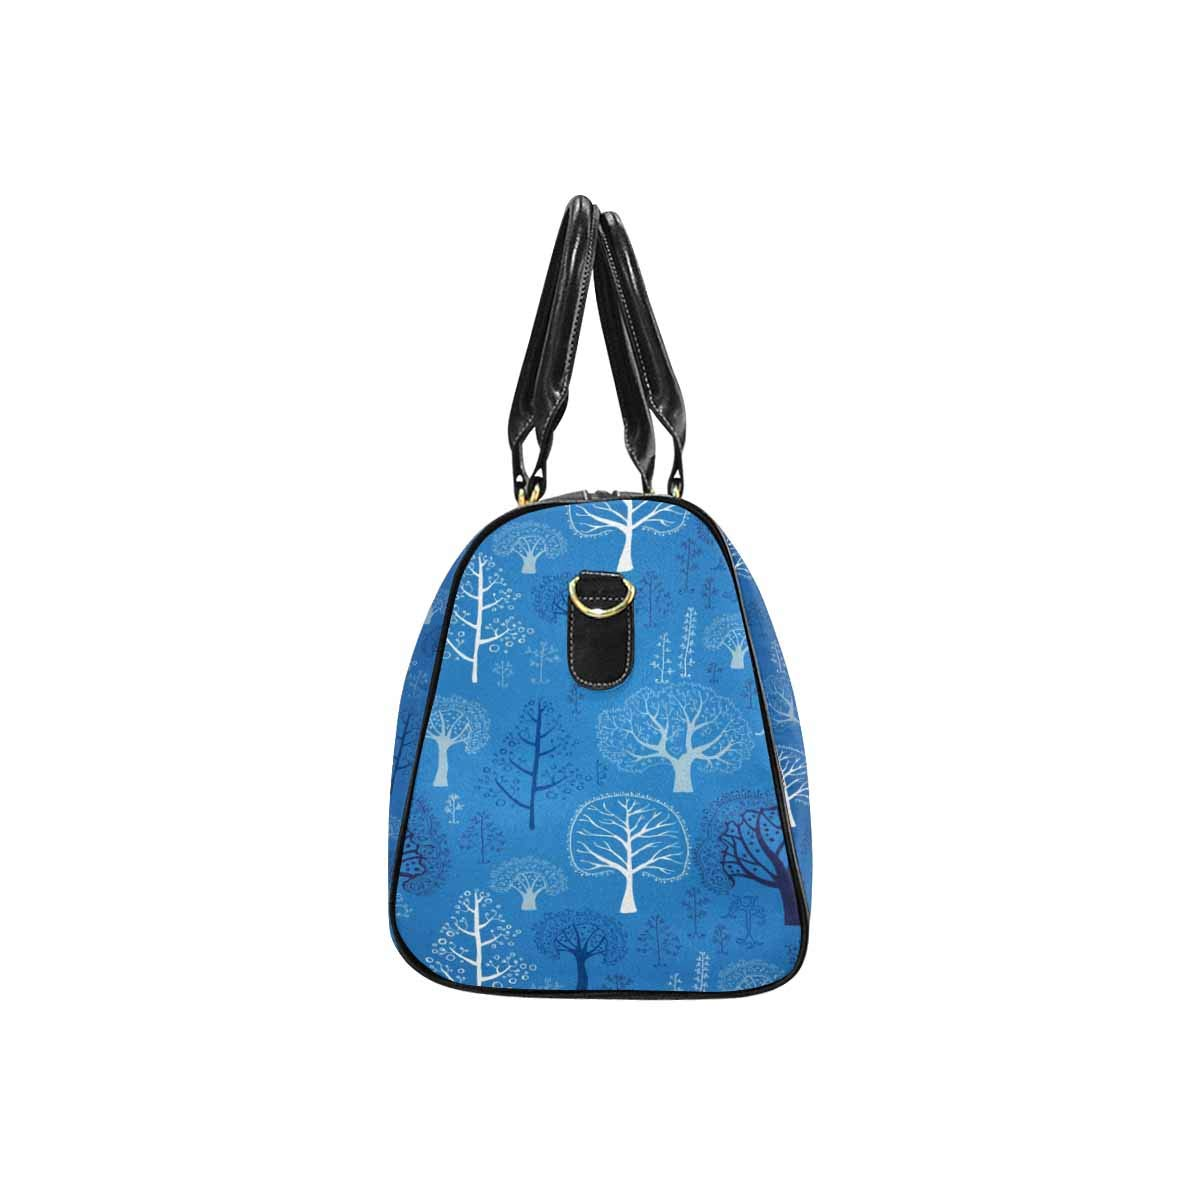 InterestPrint Travel Duffel Bag Waterproof Fabric Overnight Bag Blue Pattern With Tree Branches